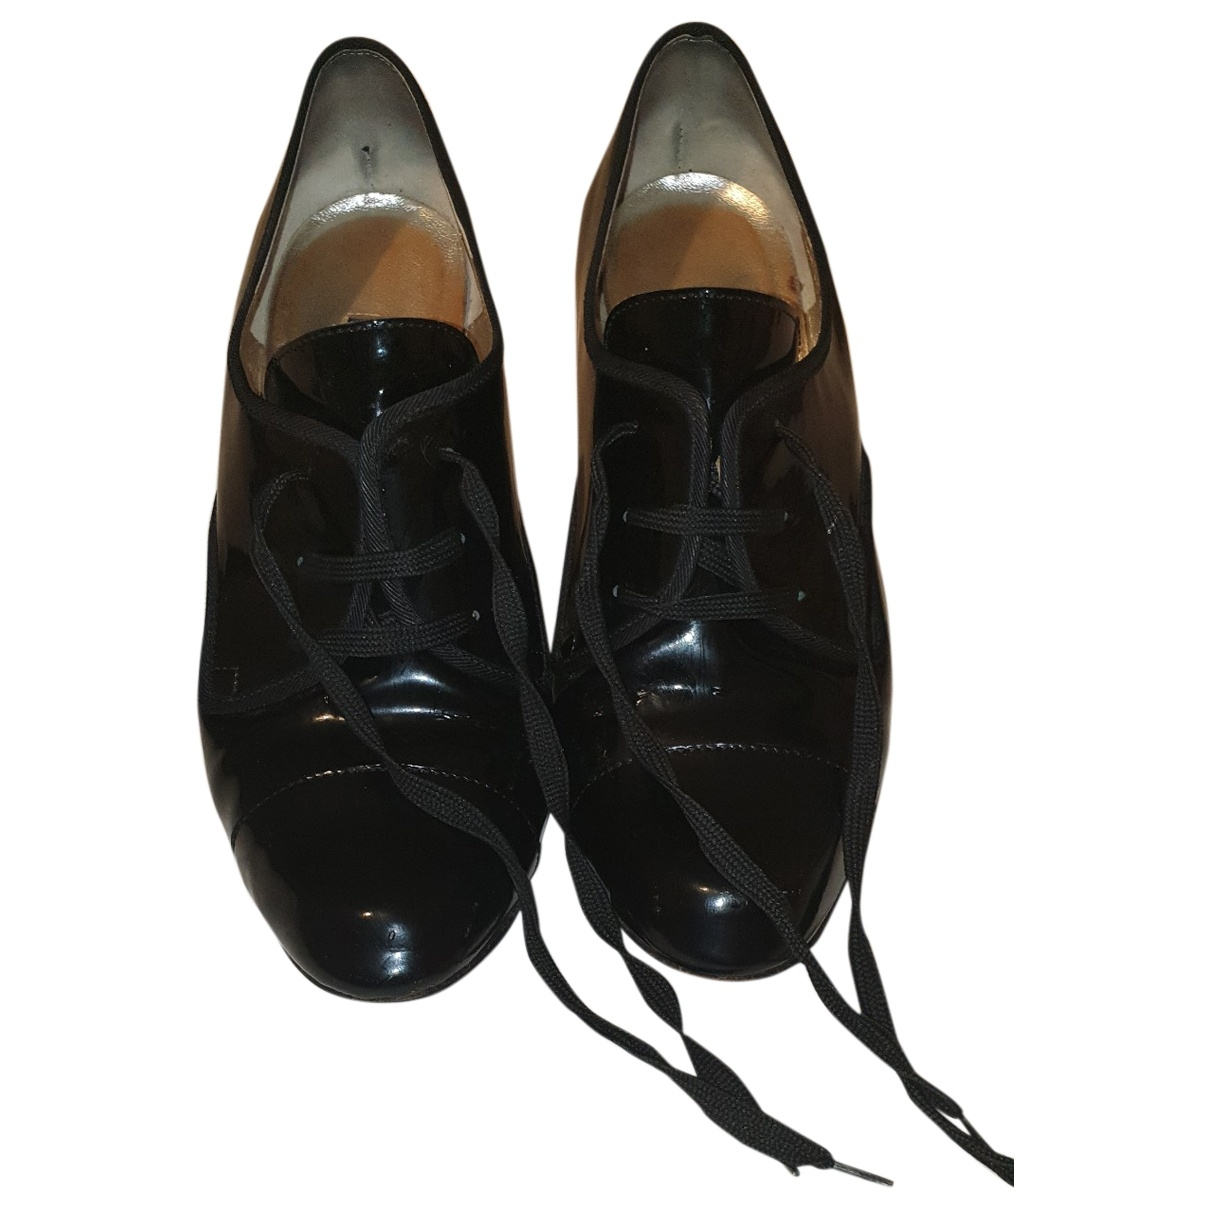 Dolce & Gabbana \N Black Patent leather Lace ups for Women 39.5 EU